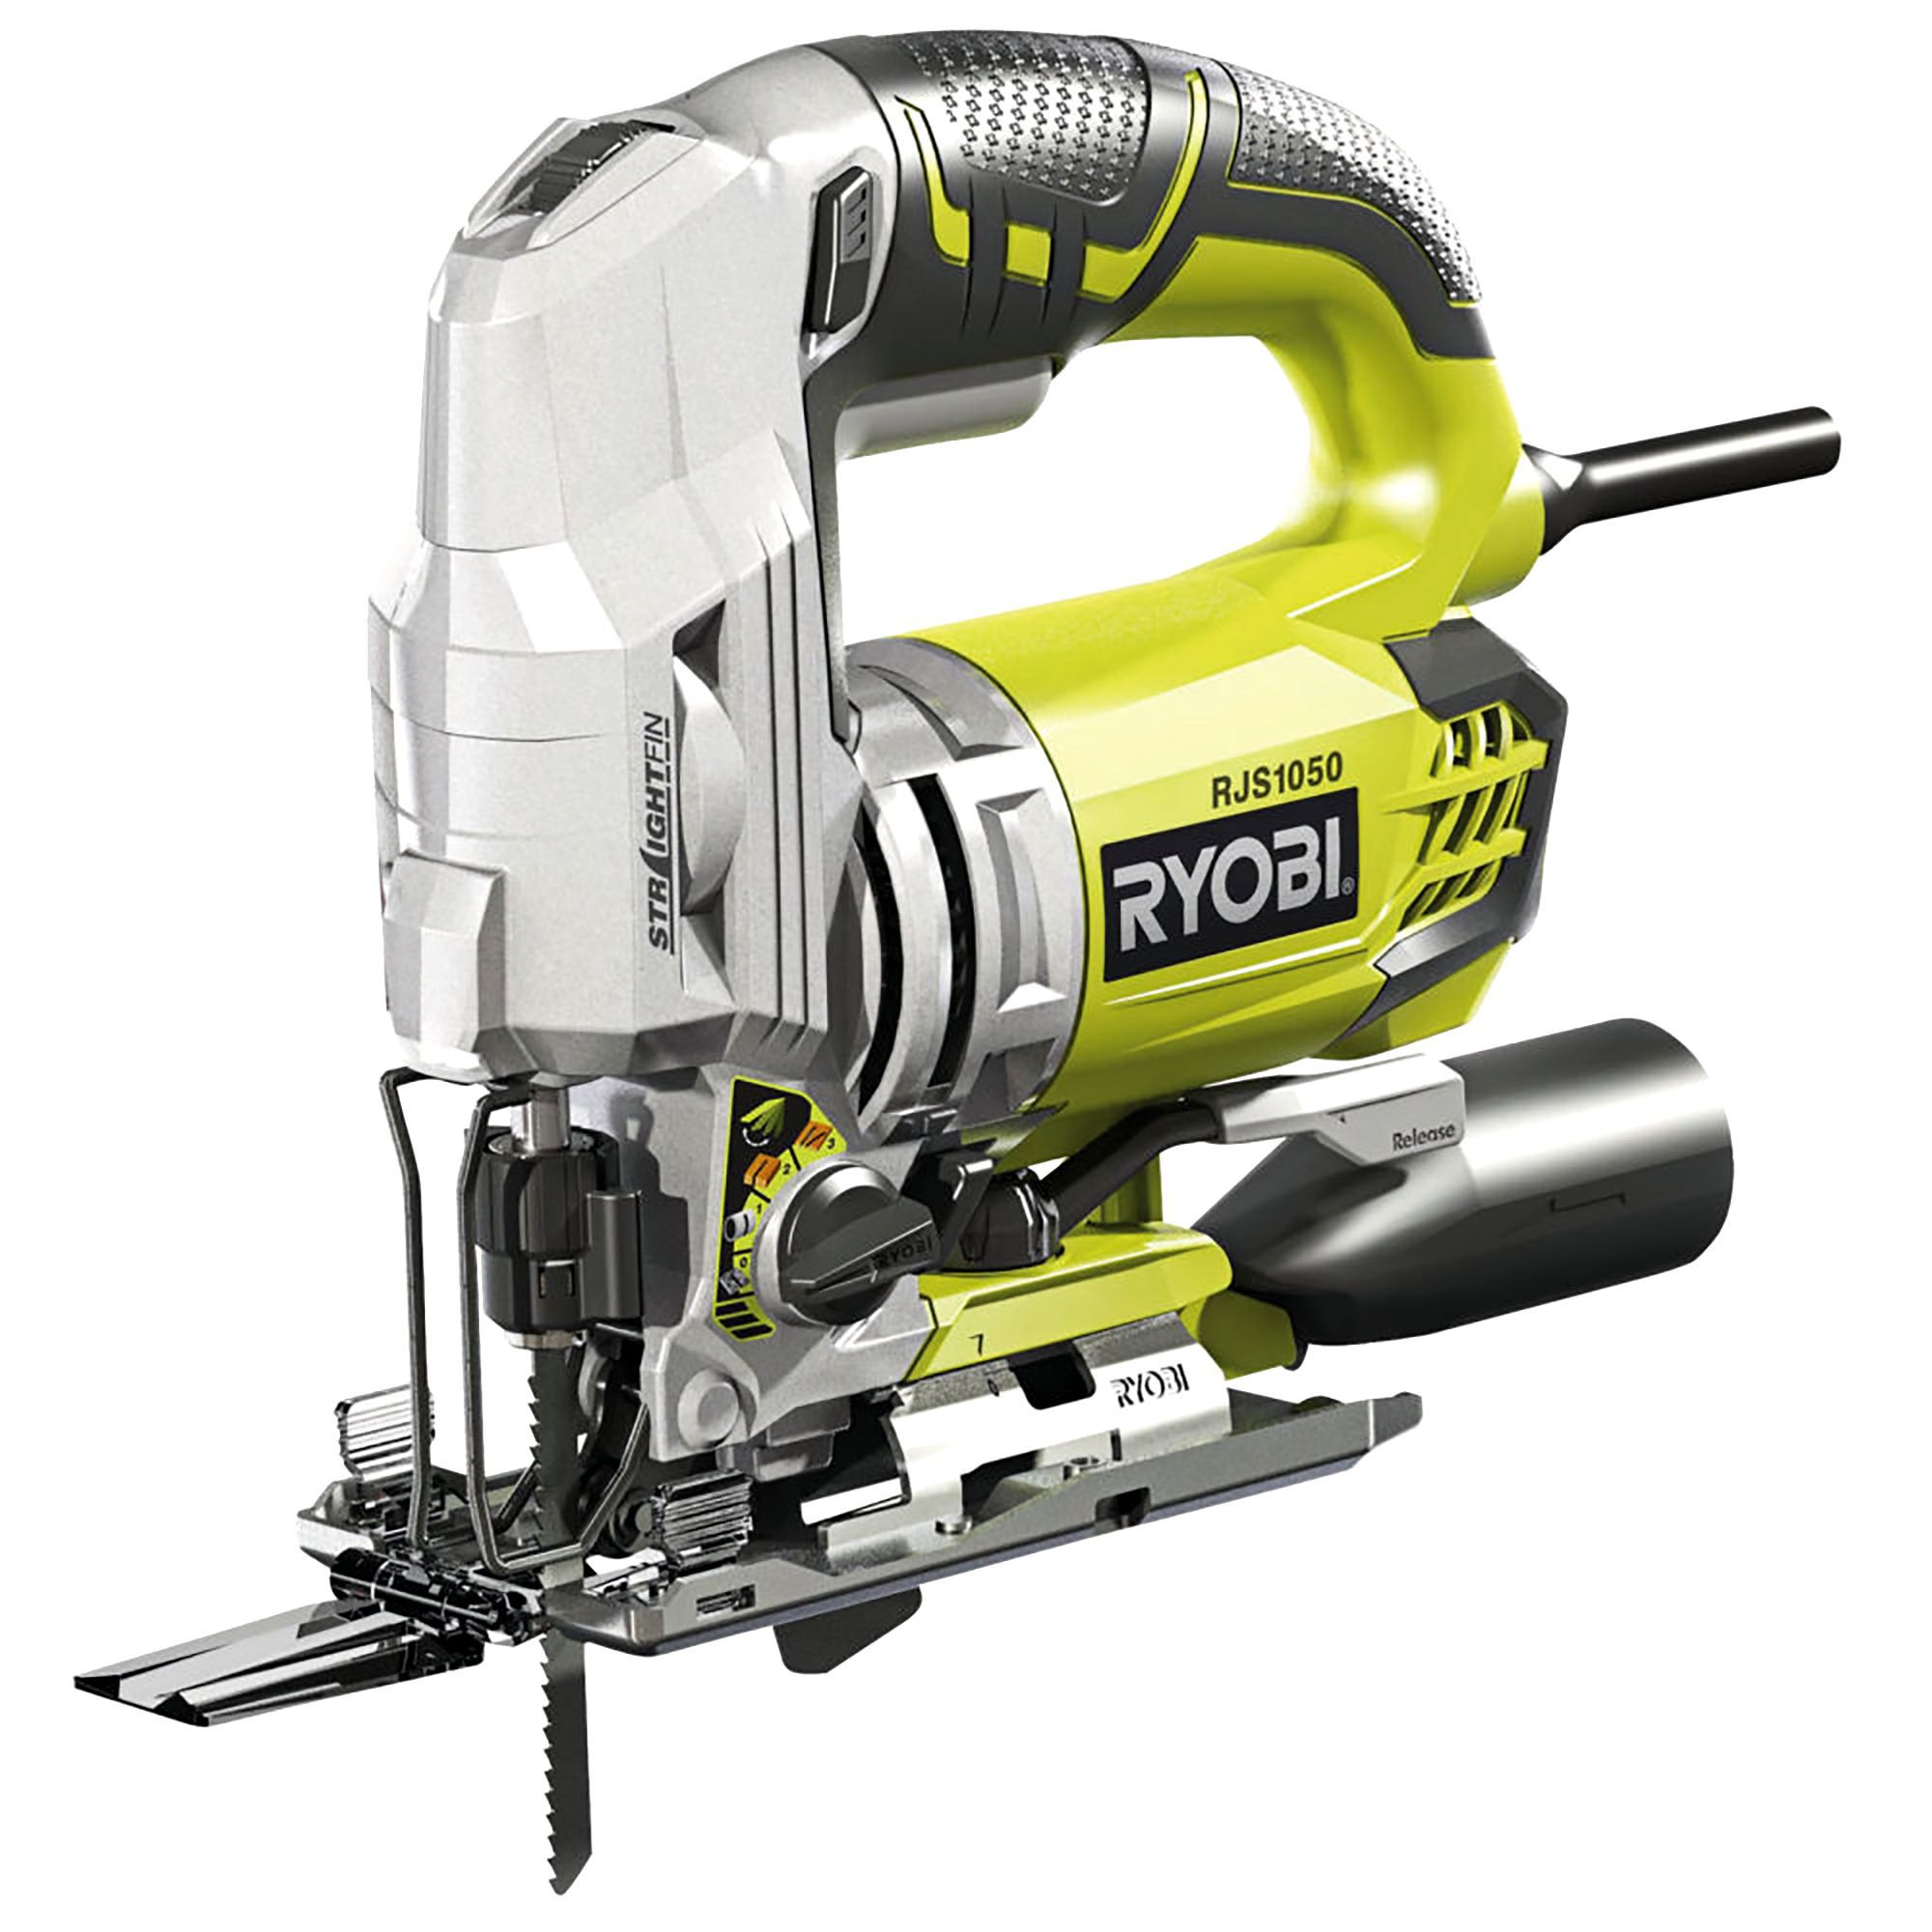 ryobi one 18v 150mm cordless circular saw rwsl1801m. Black Bedroom Furniture Sets. Home Design Ideas